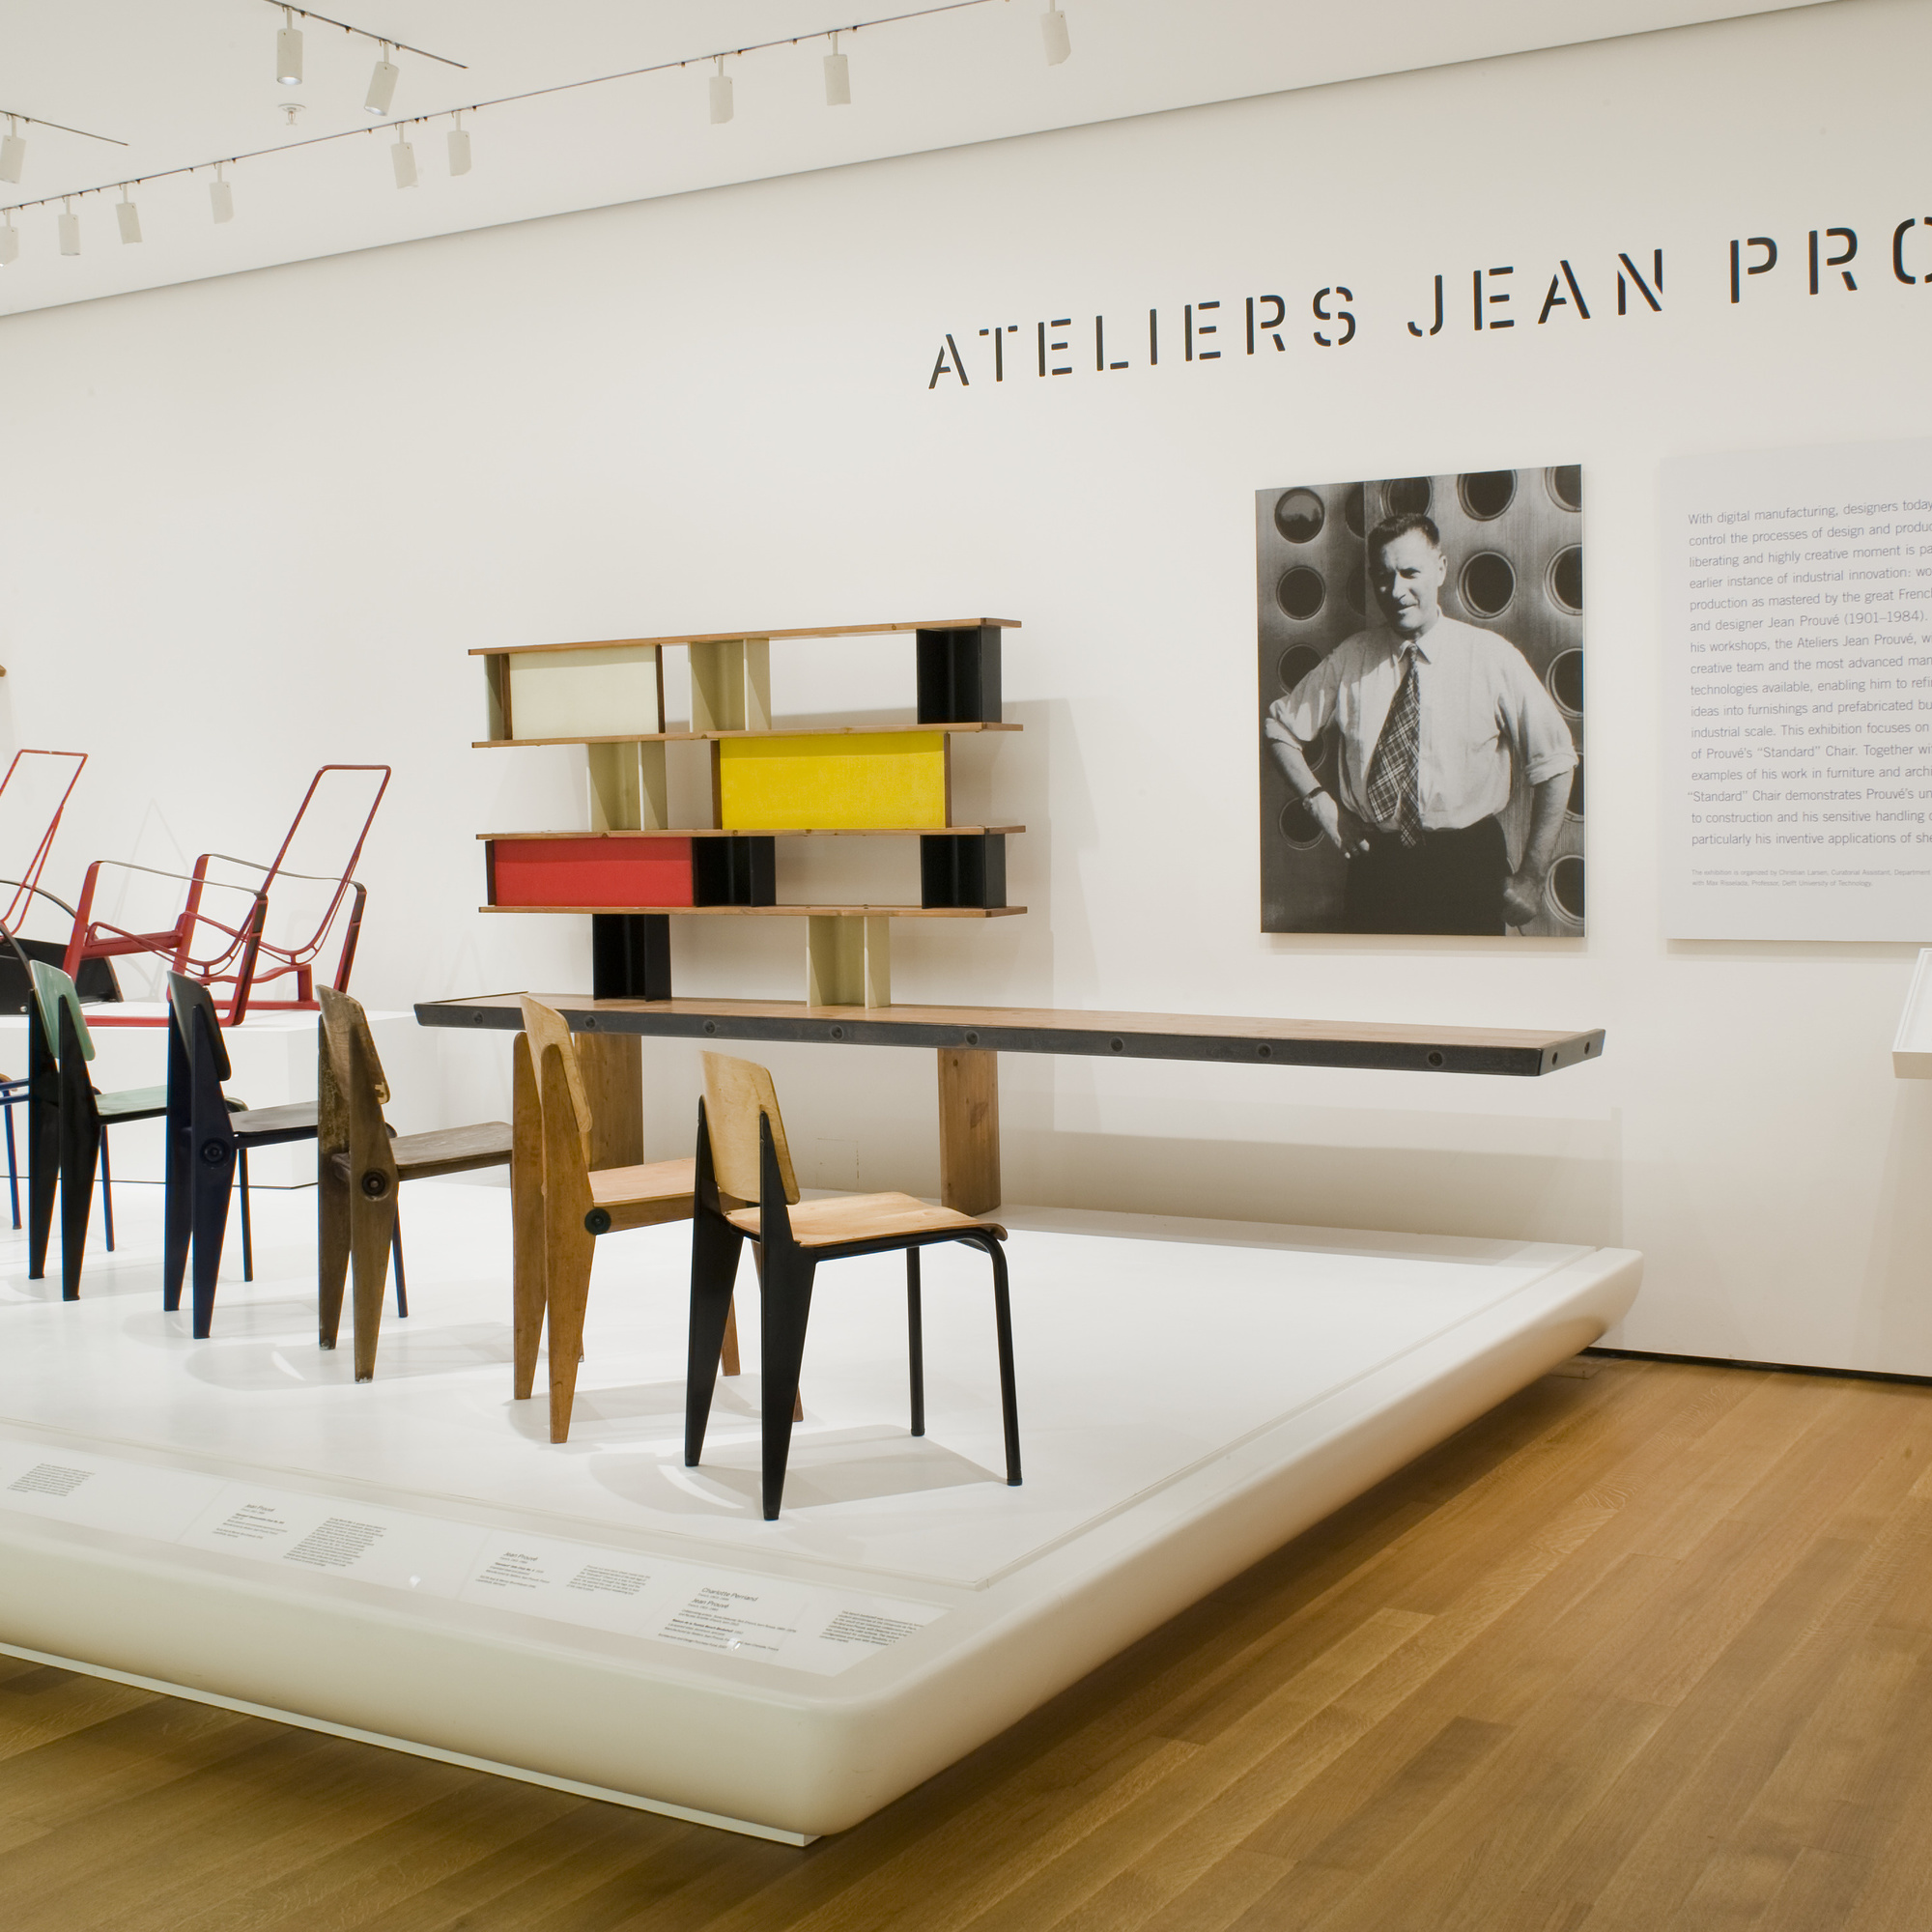 Installation view of Ateliers Jean Prouvé at The Museum of Modern Art, New York. Photo: Thomas Griesel